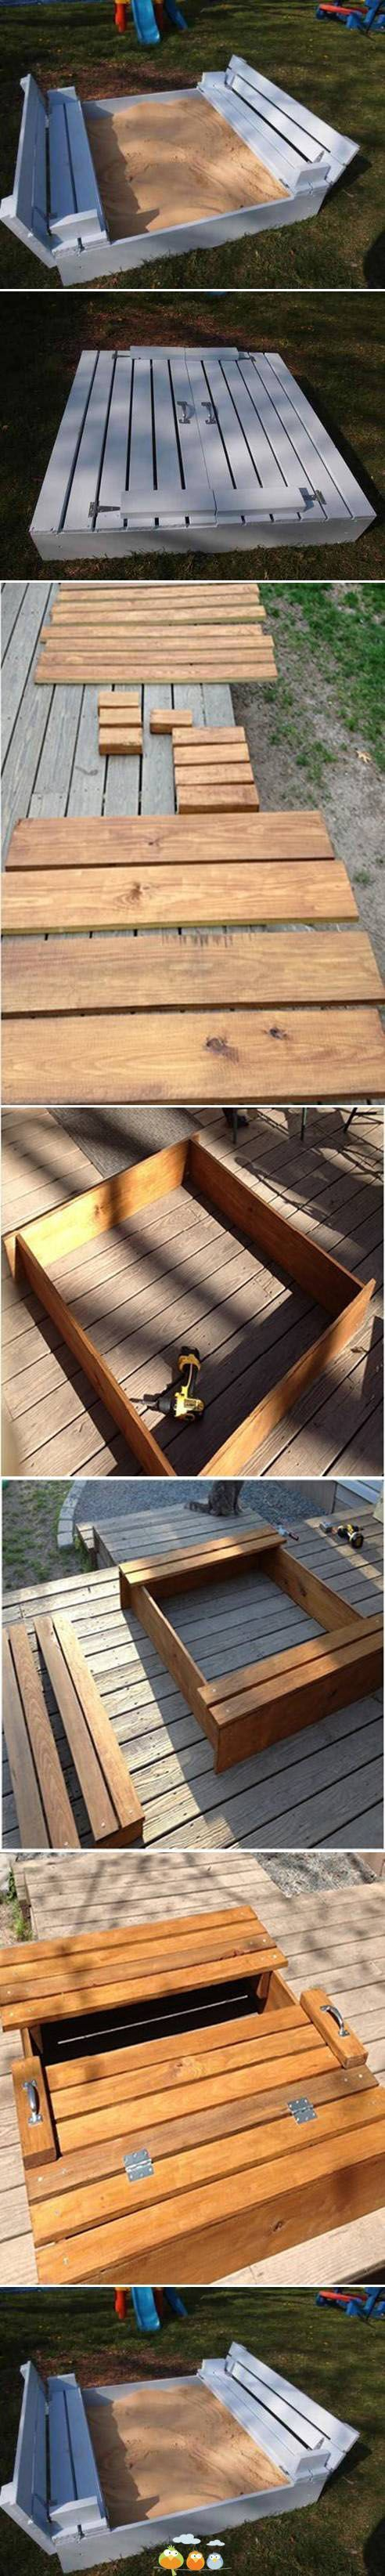 wood pallet sandbox, with bench seats that unfold to cover the sandbox...very cleaver #diywoodprojectsforkids